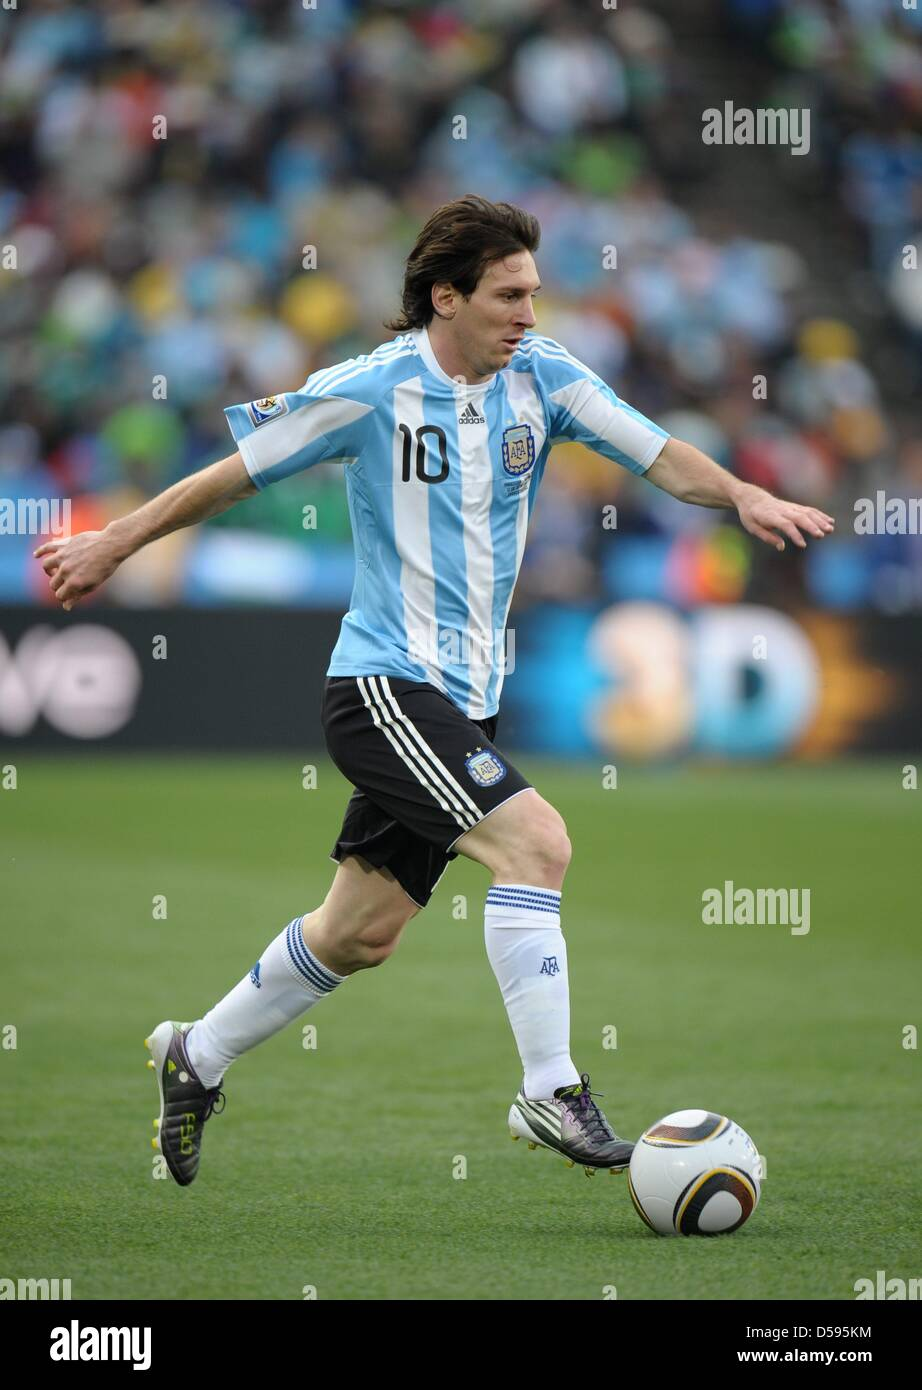 1e9d39da2 Lionel Messi of Argentina controls the ball during the FIFA World Cup group  B soccer match between Argentina and Nigeria at Ellis Park Stadium in ...